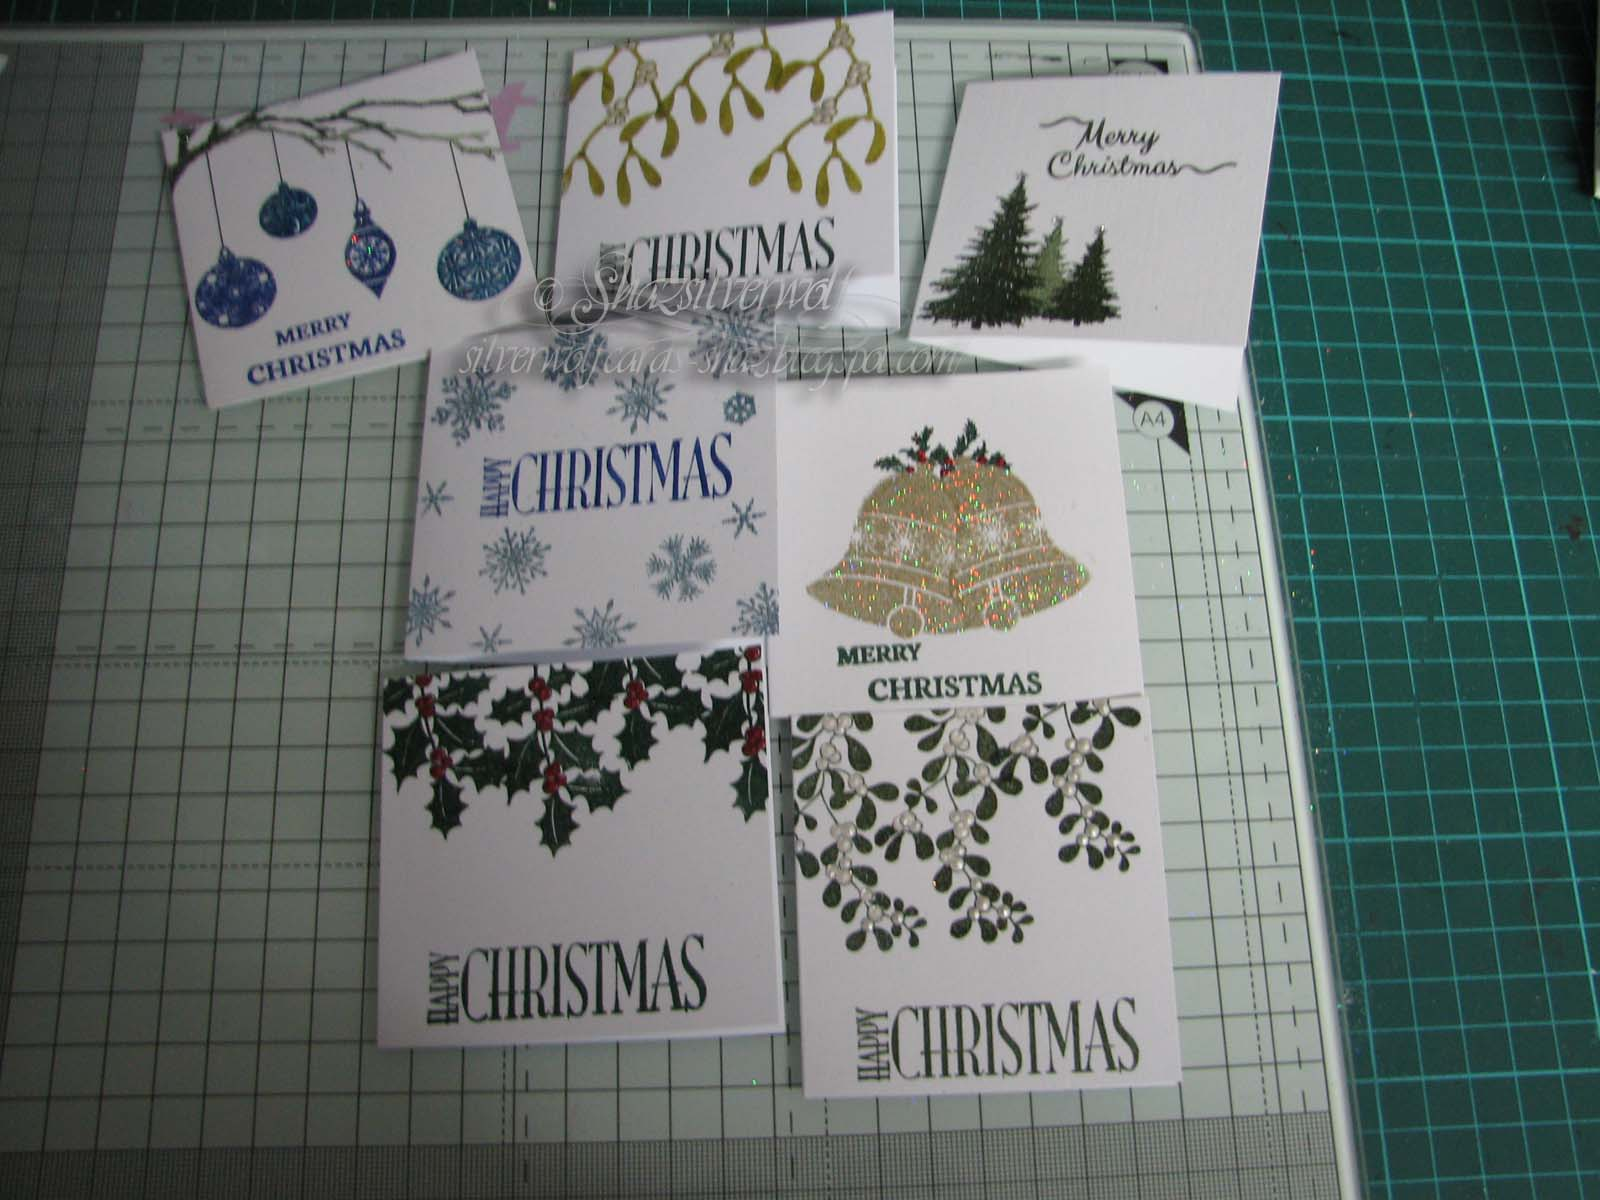 Silverwolf Cards: Christmas Card Club Challenge #24- All